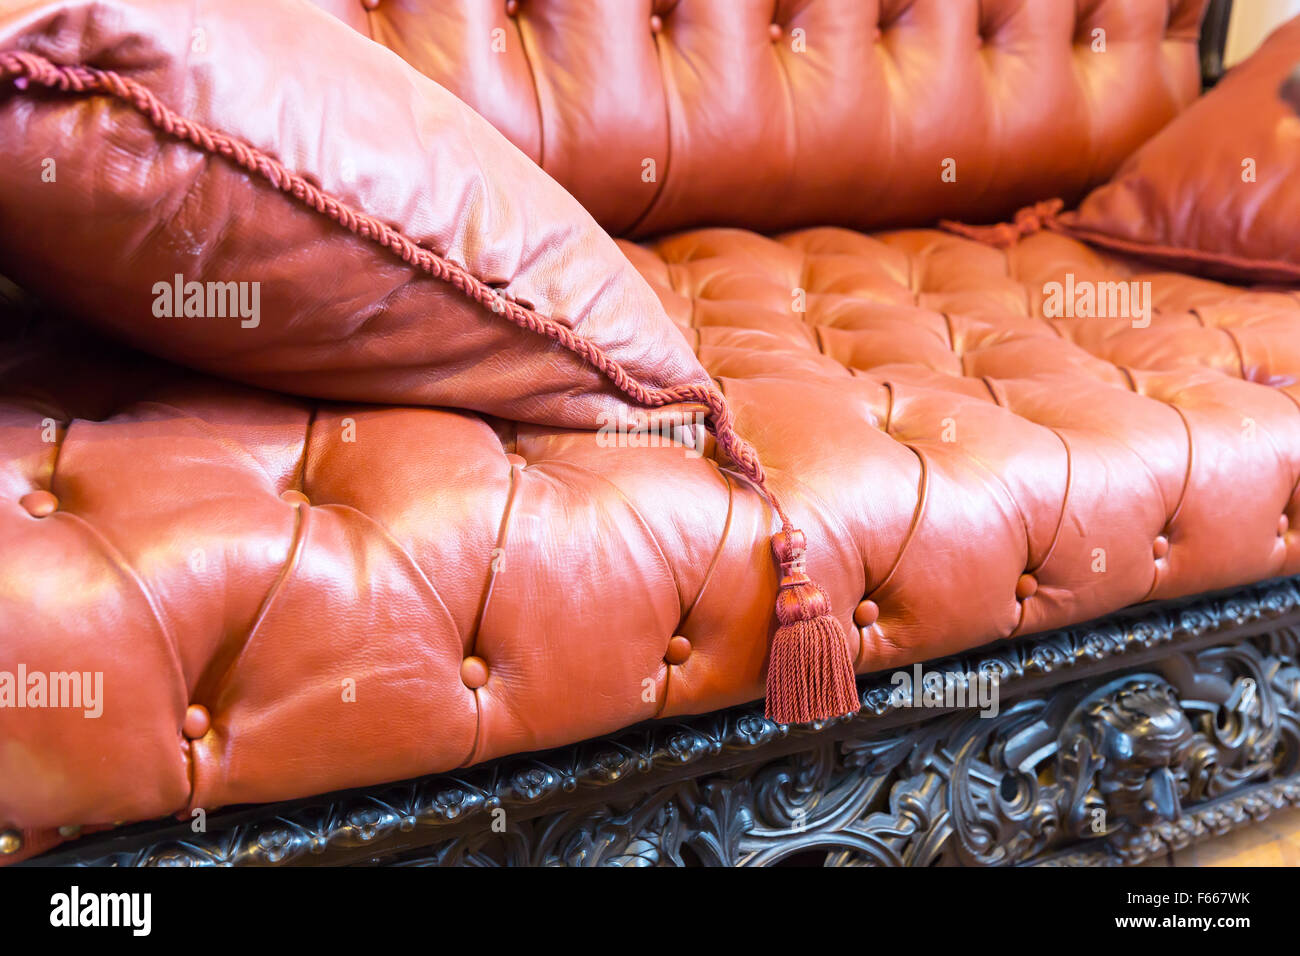 Leather Covered Stock Photos & Leather Covered Stock Images - Alamy